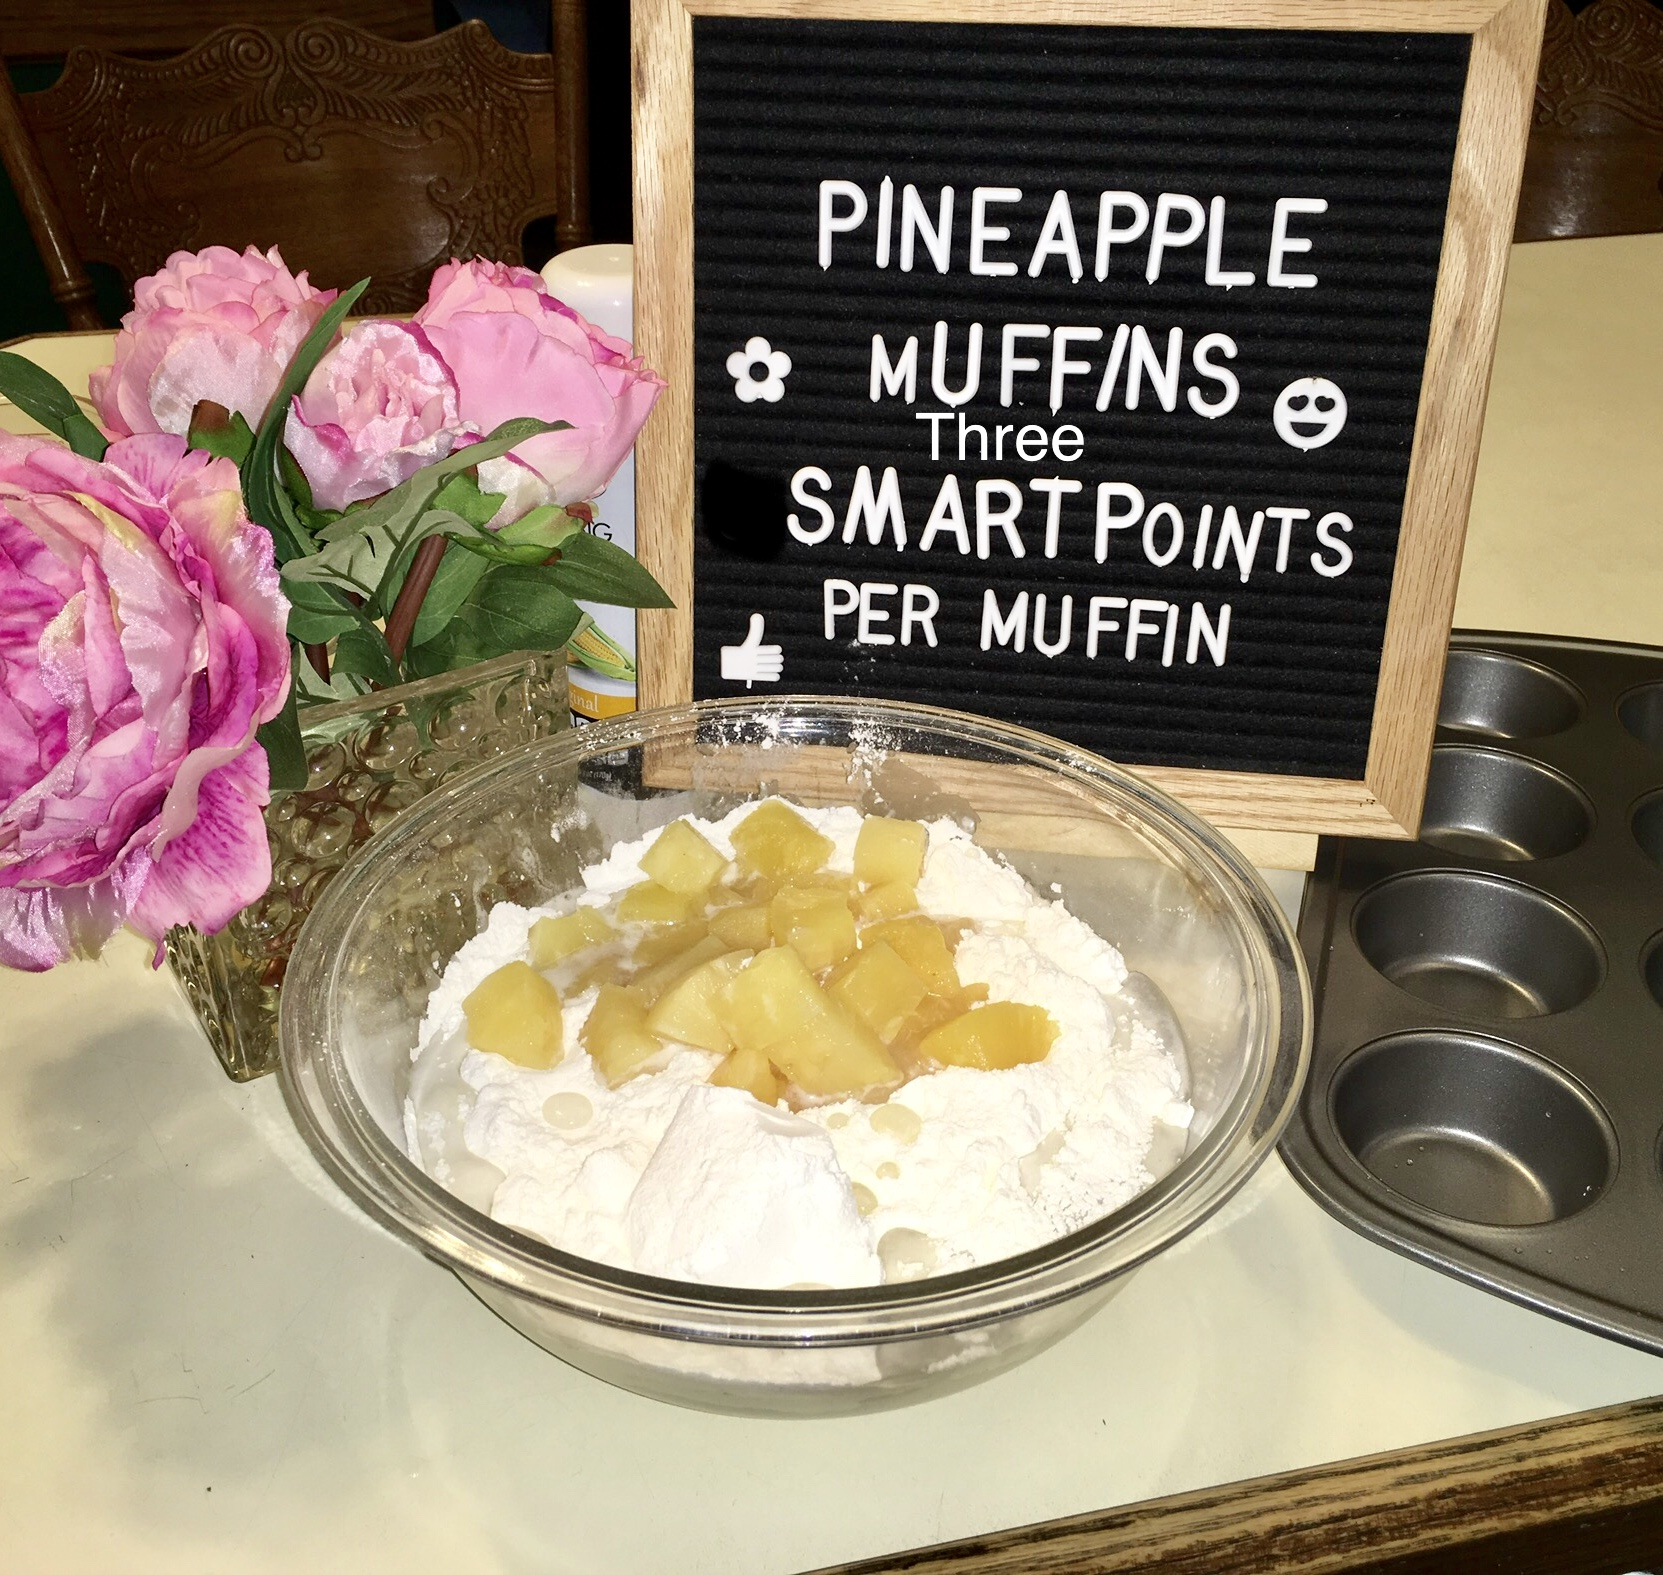 Easy Two Ingredient Pineapple Muffin Recipe